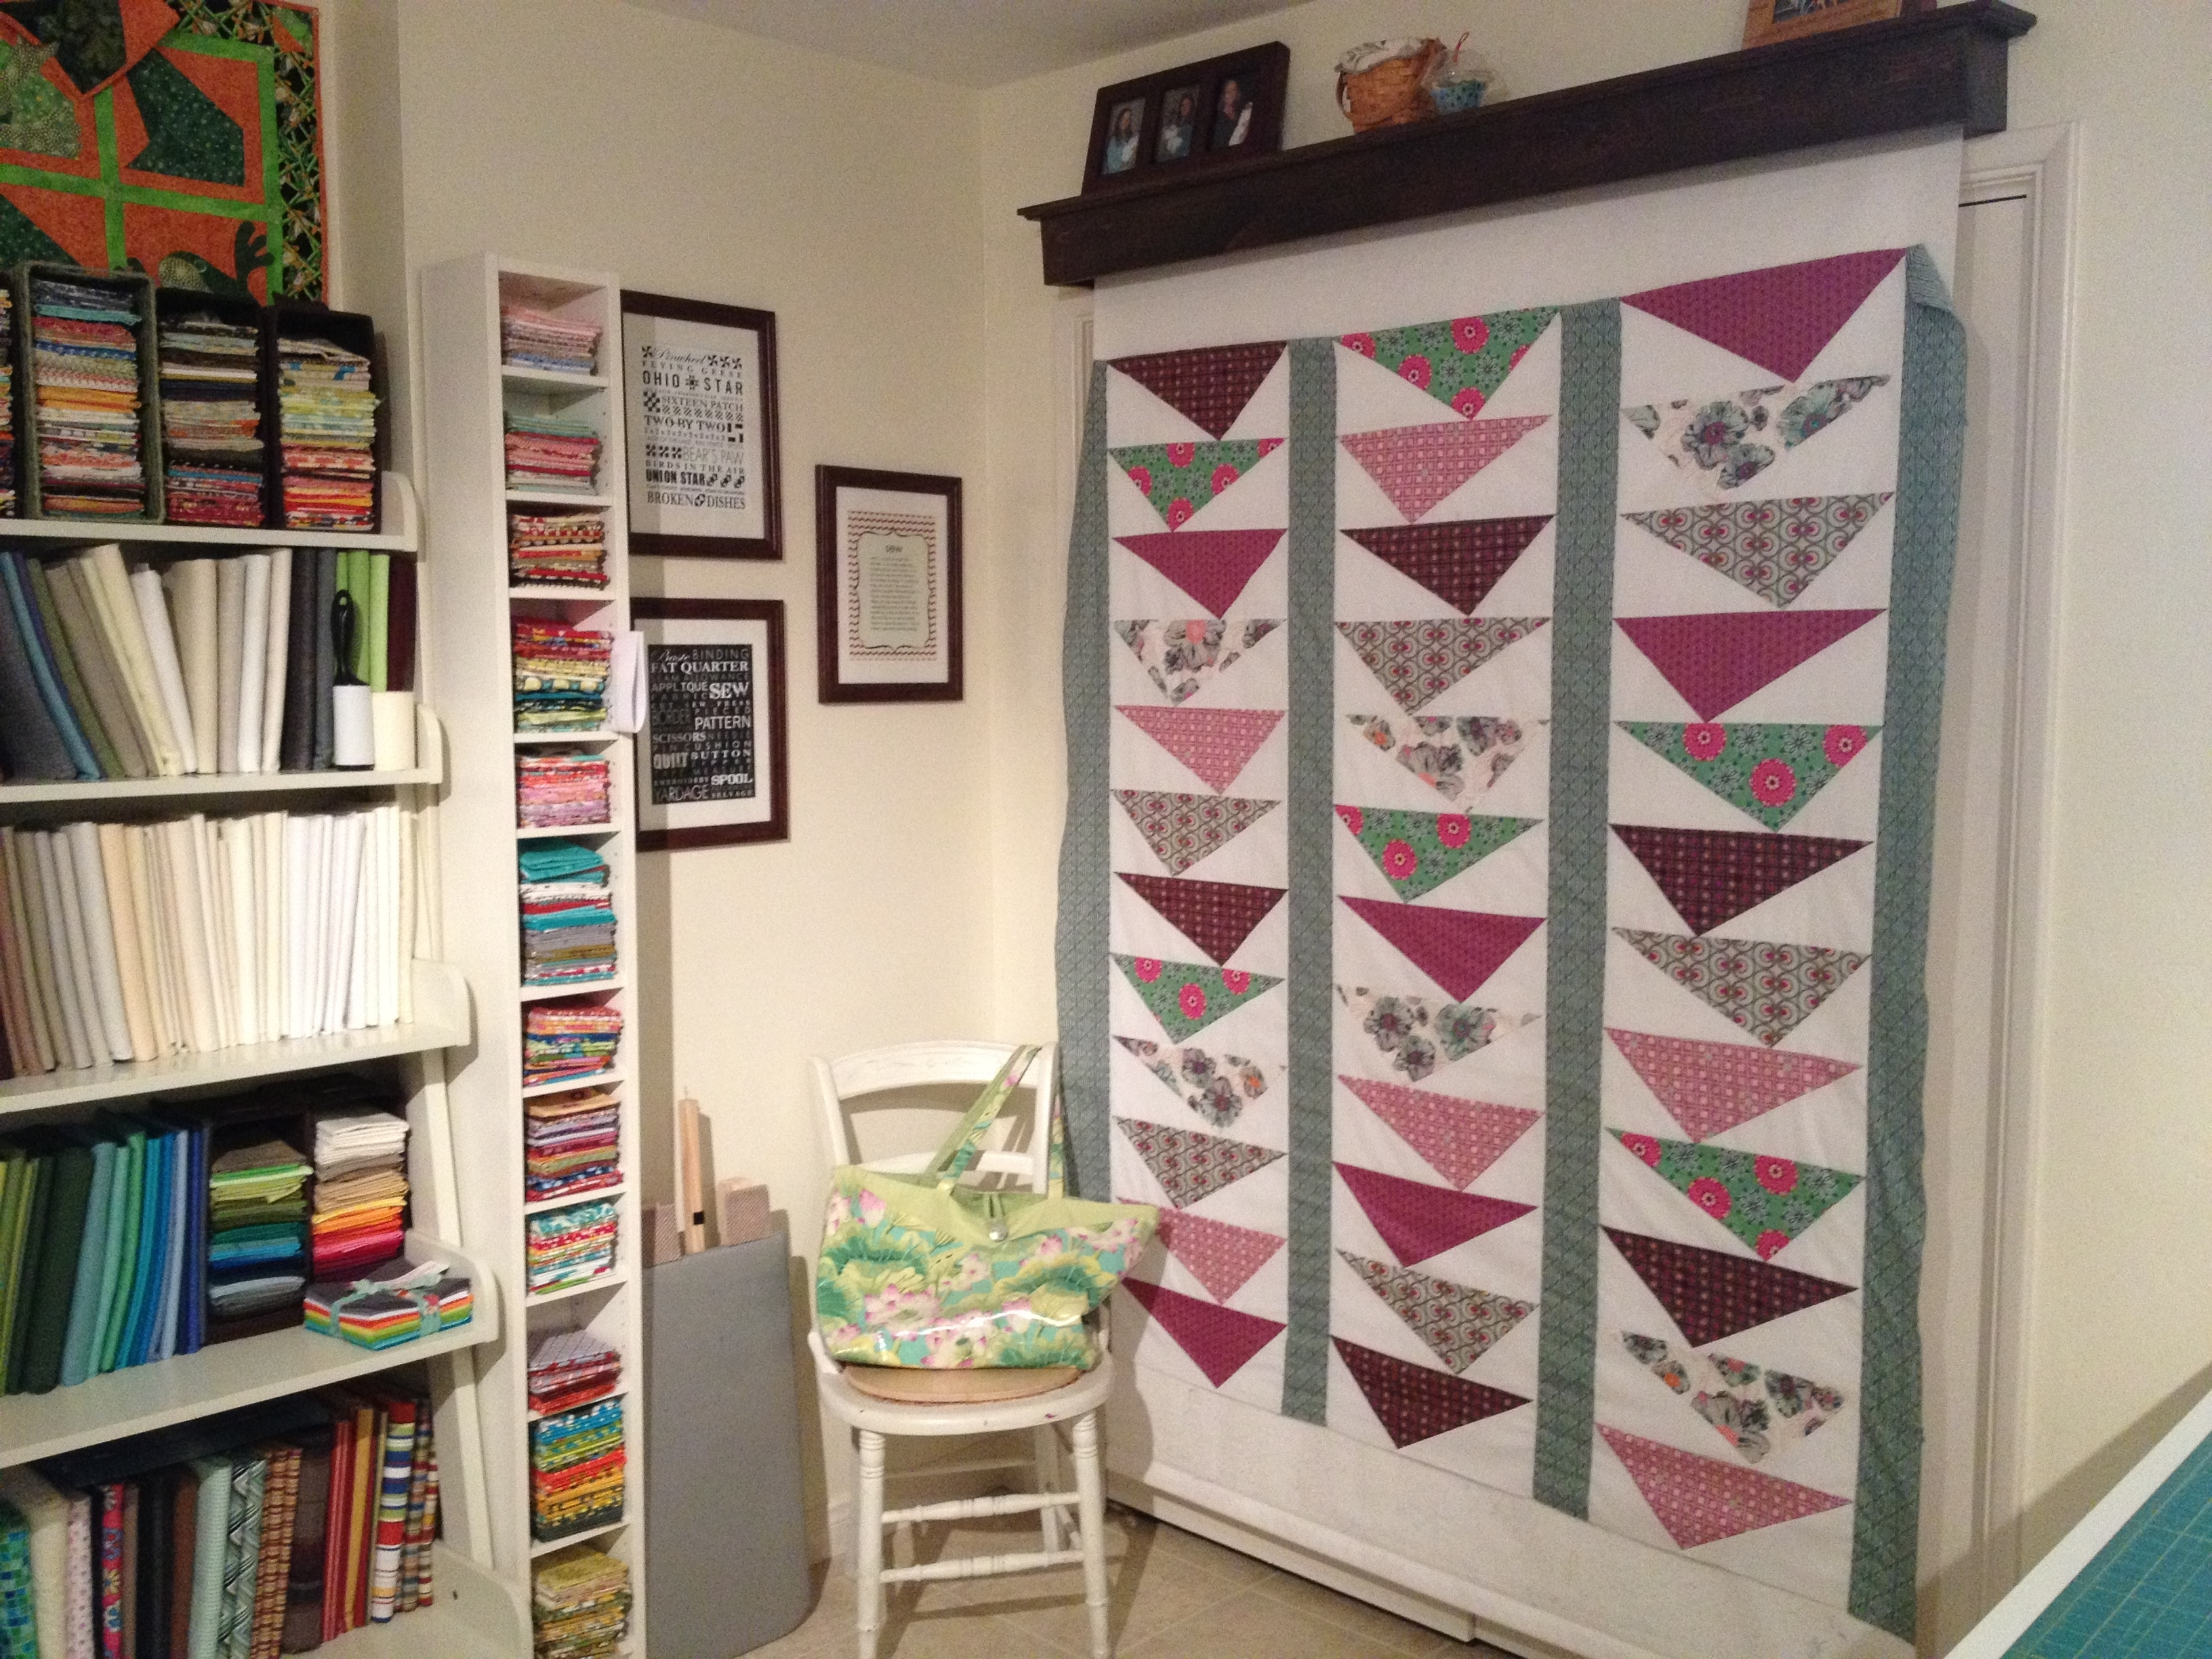 July 11, 2012 – Art Gallery Fabrics – The Creative Blog For Most Current Creative Fabric Wall Art (View 8 of 15)